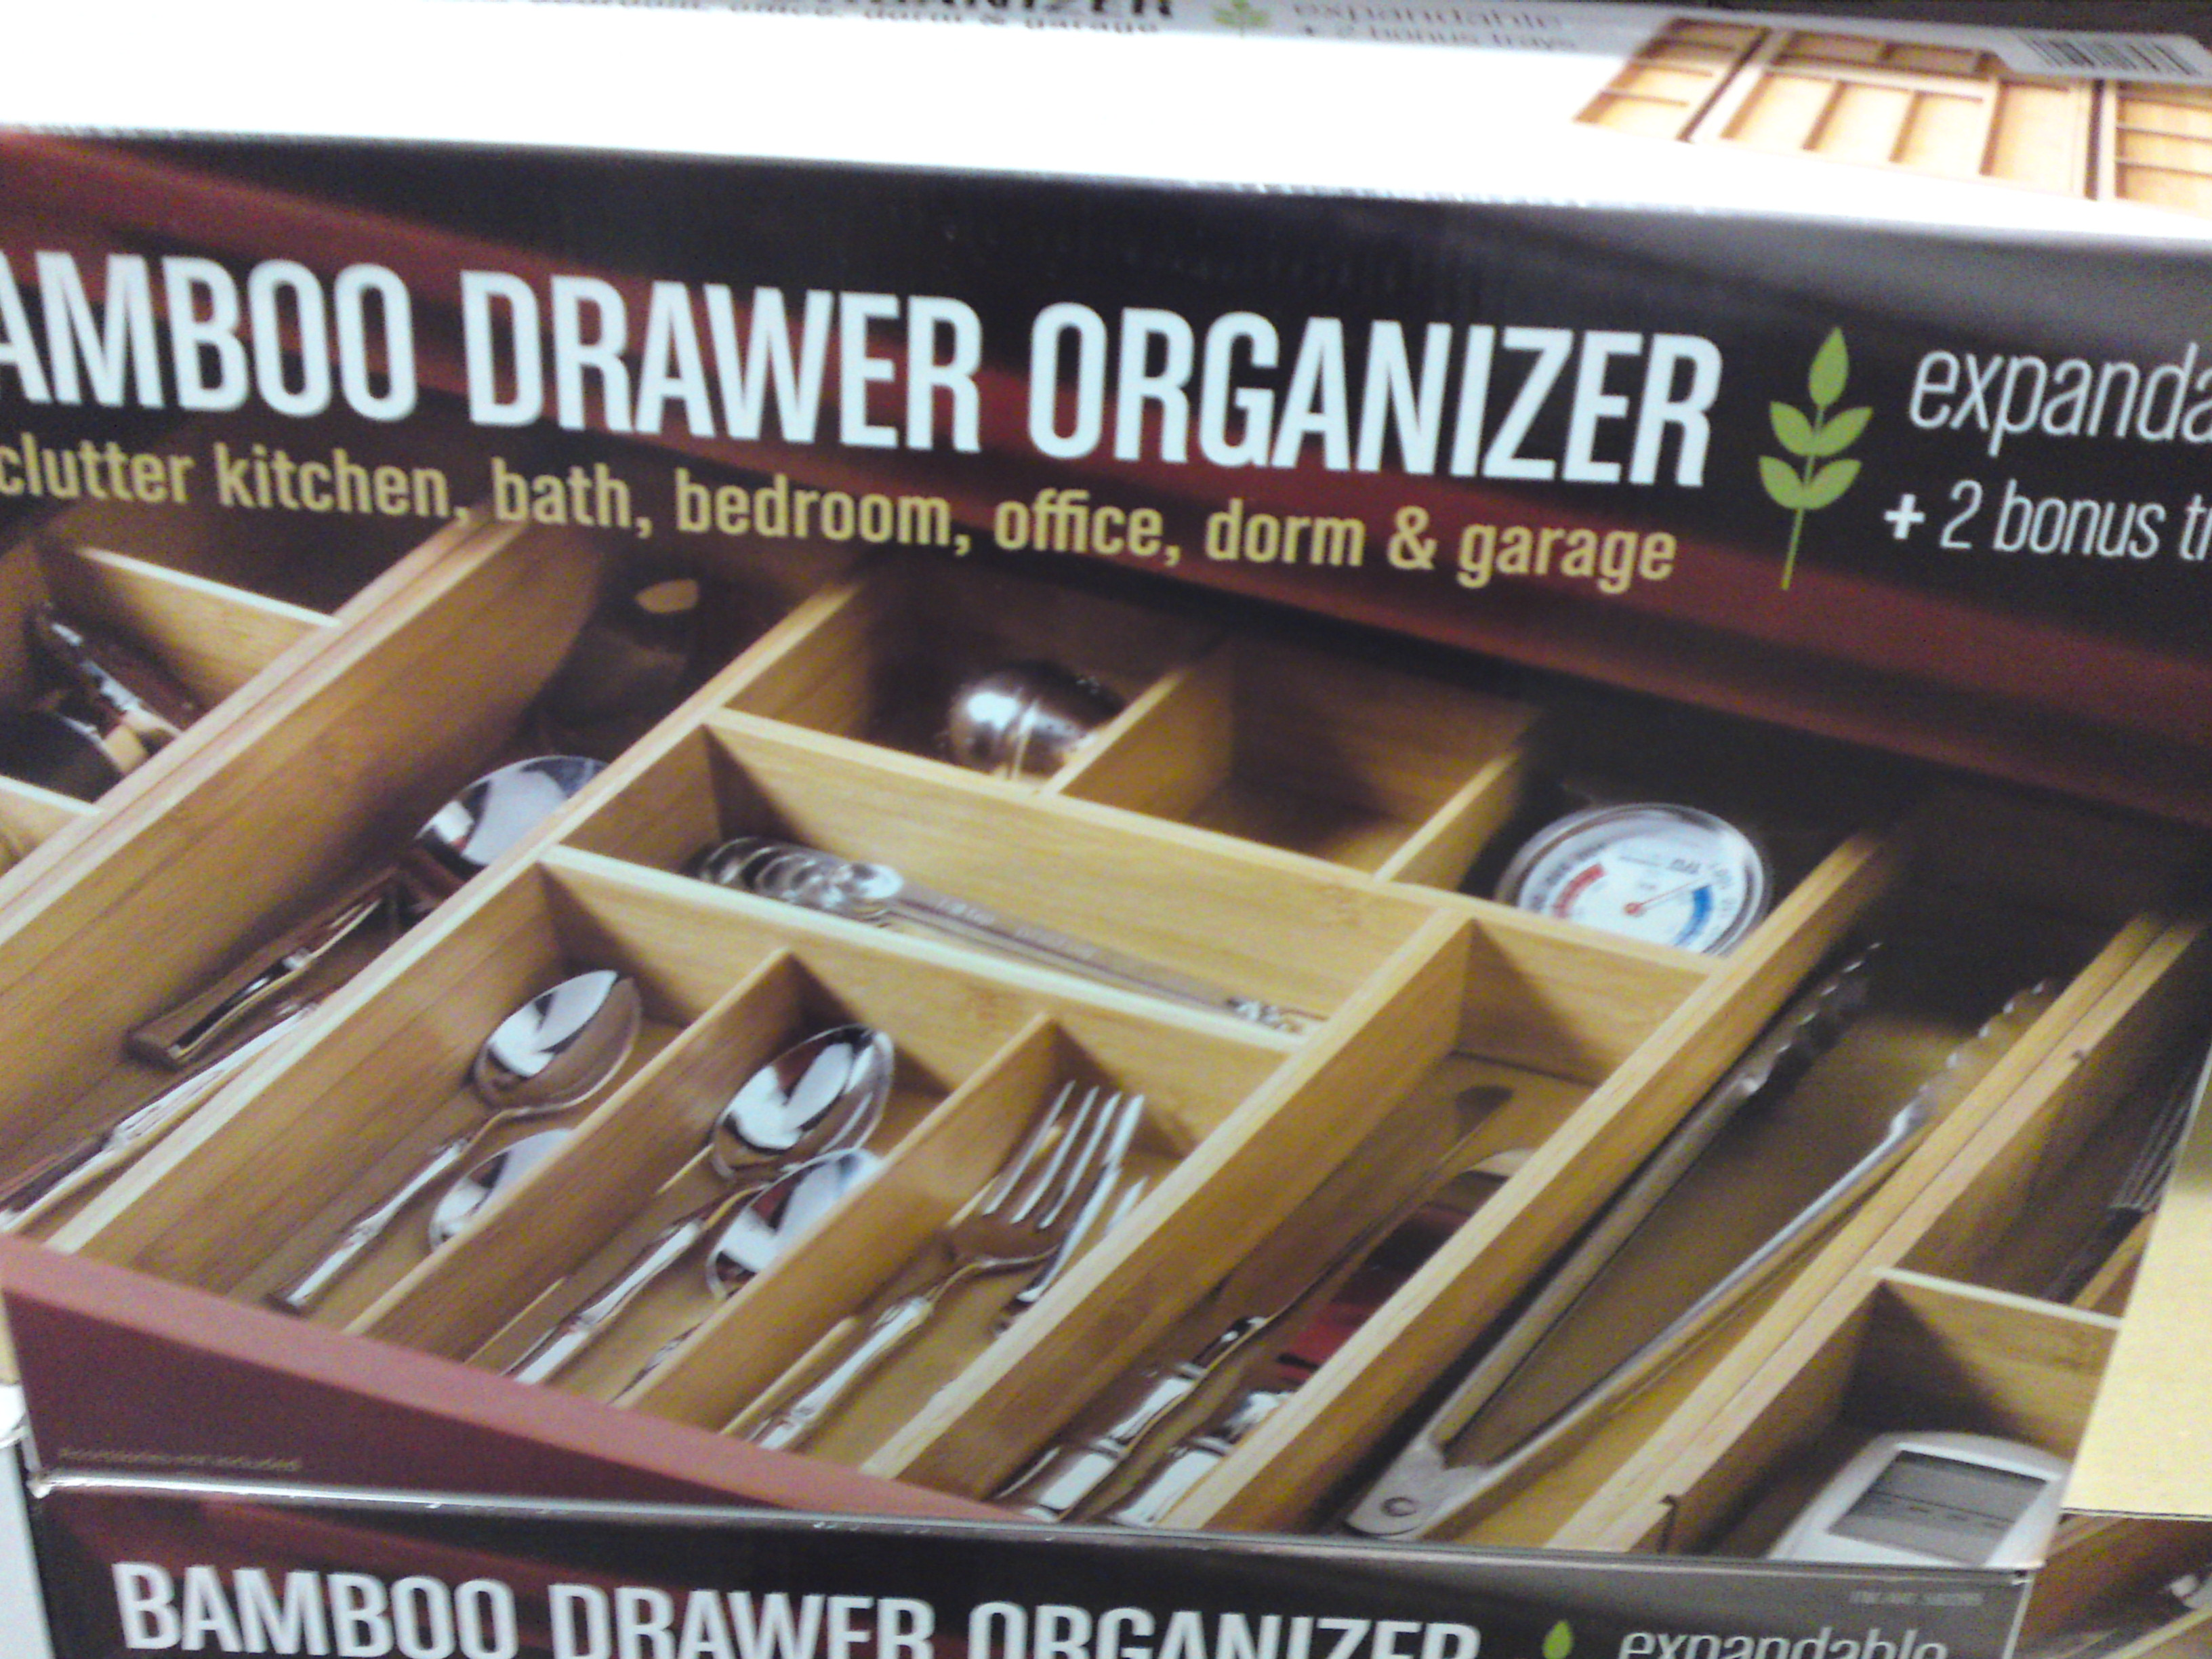 Costco Seville Clics Bamboo Drawer Expandable Organizer Plus 2 Bonus Trays 19 99 Frugal Hotspot